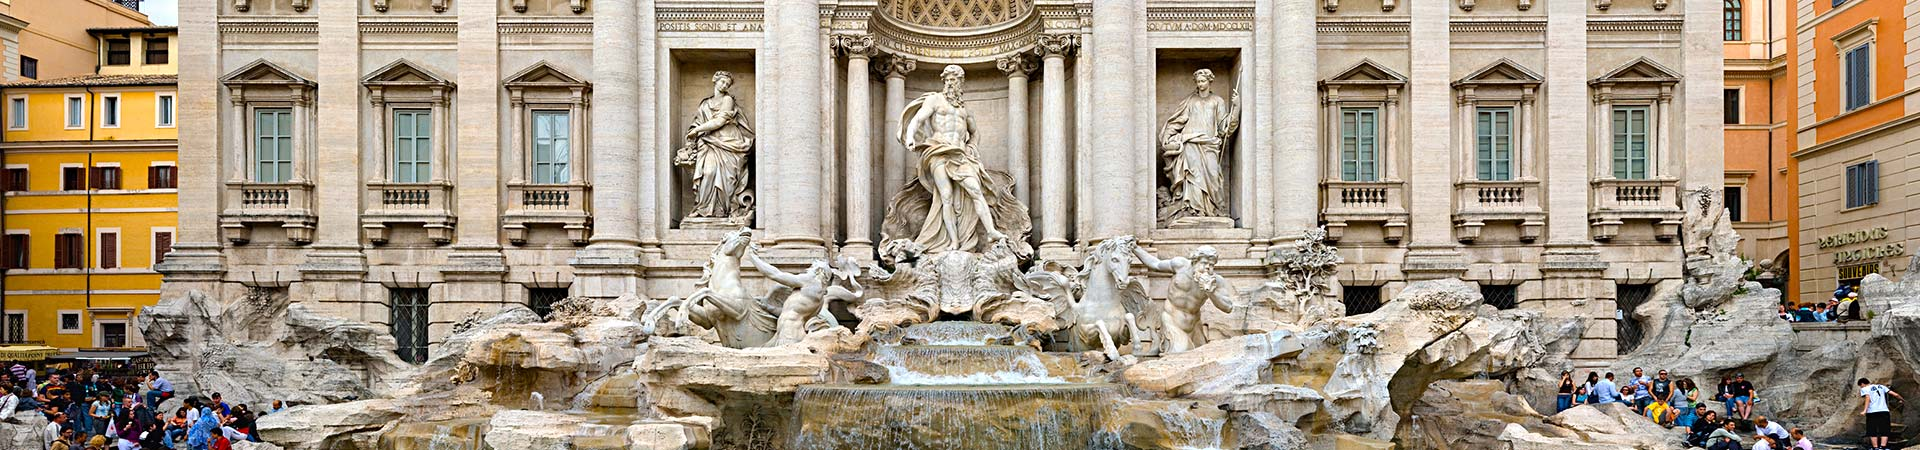 trevi fountain, must see rome tour